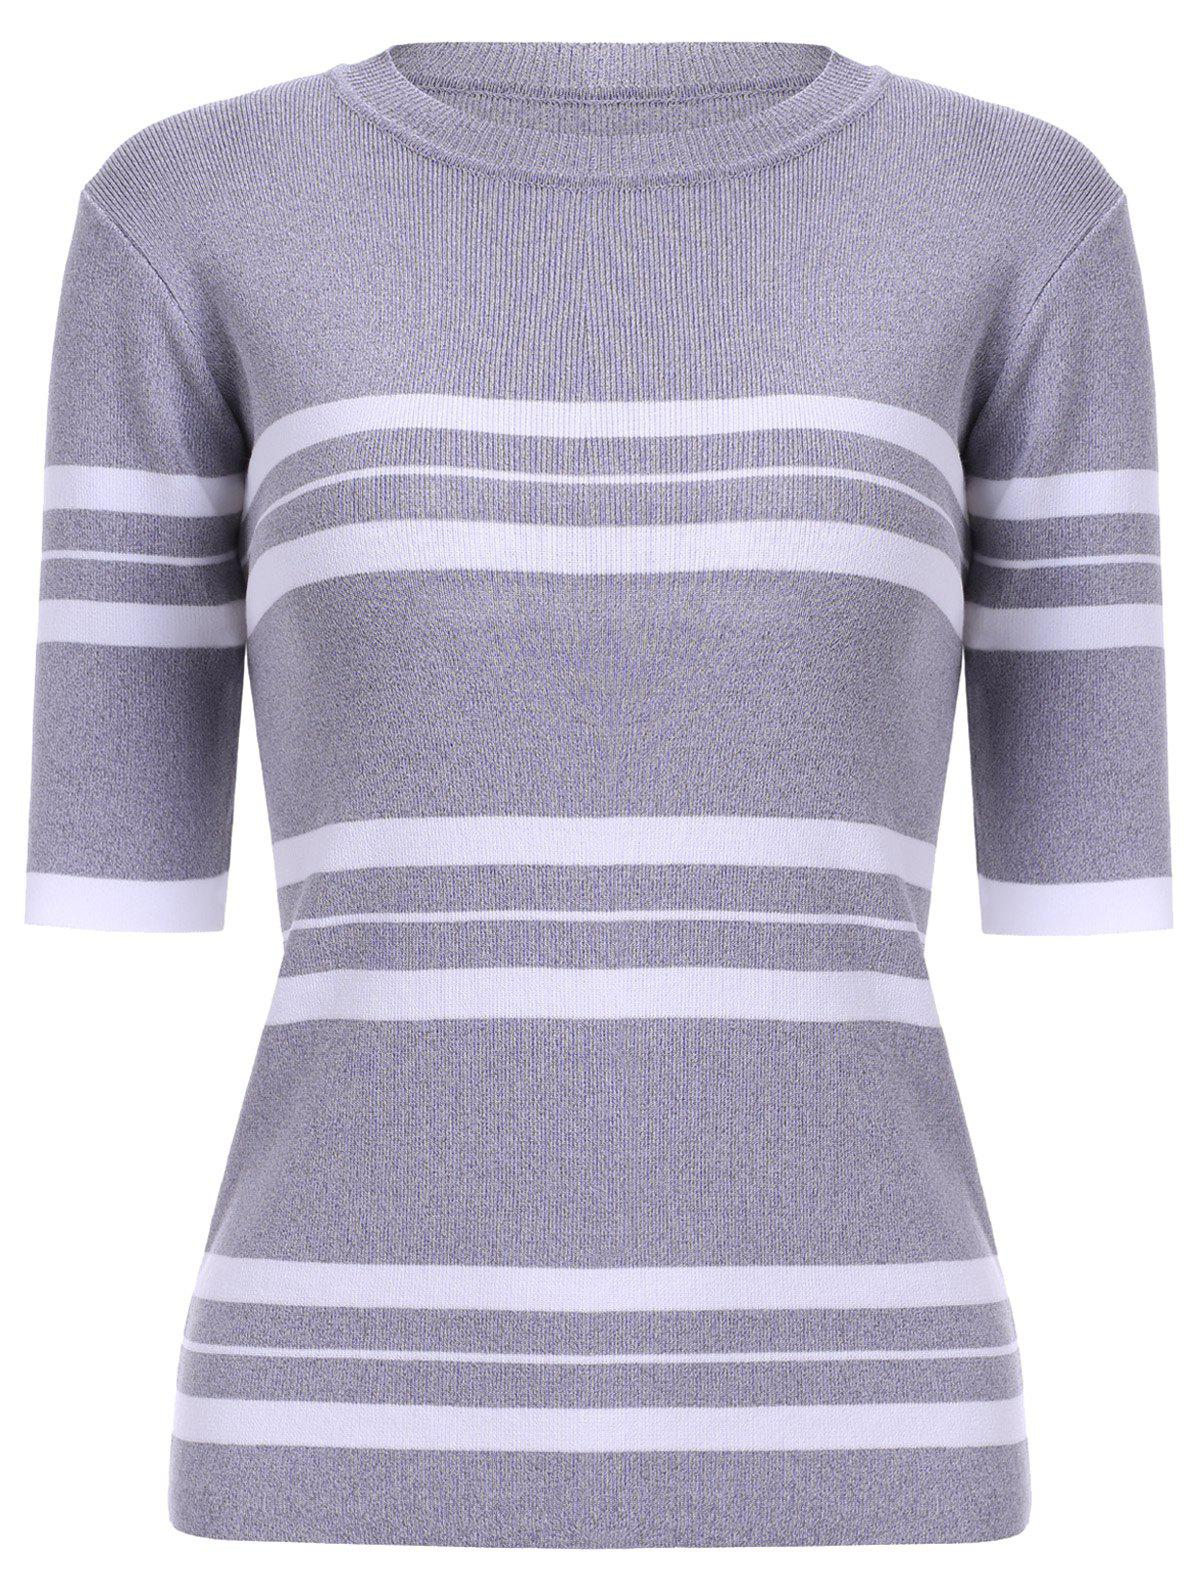 Casual Women's Jewel Neck Striped Stitching Color 3/4 Sleeve Knitwear - LIGHT GRAY ONE SIZE(FIT SIZE XS TO M)